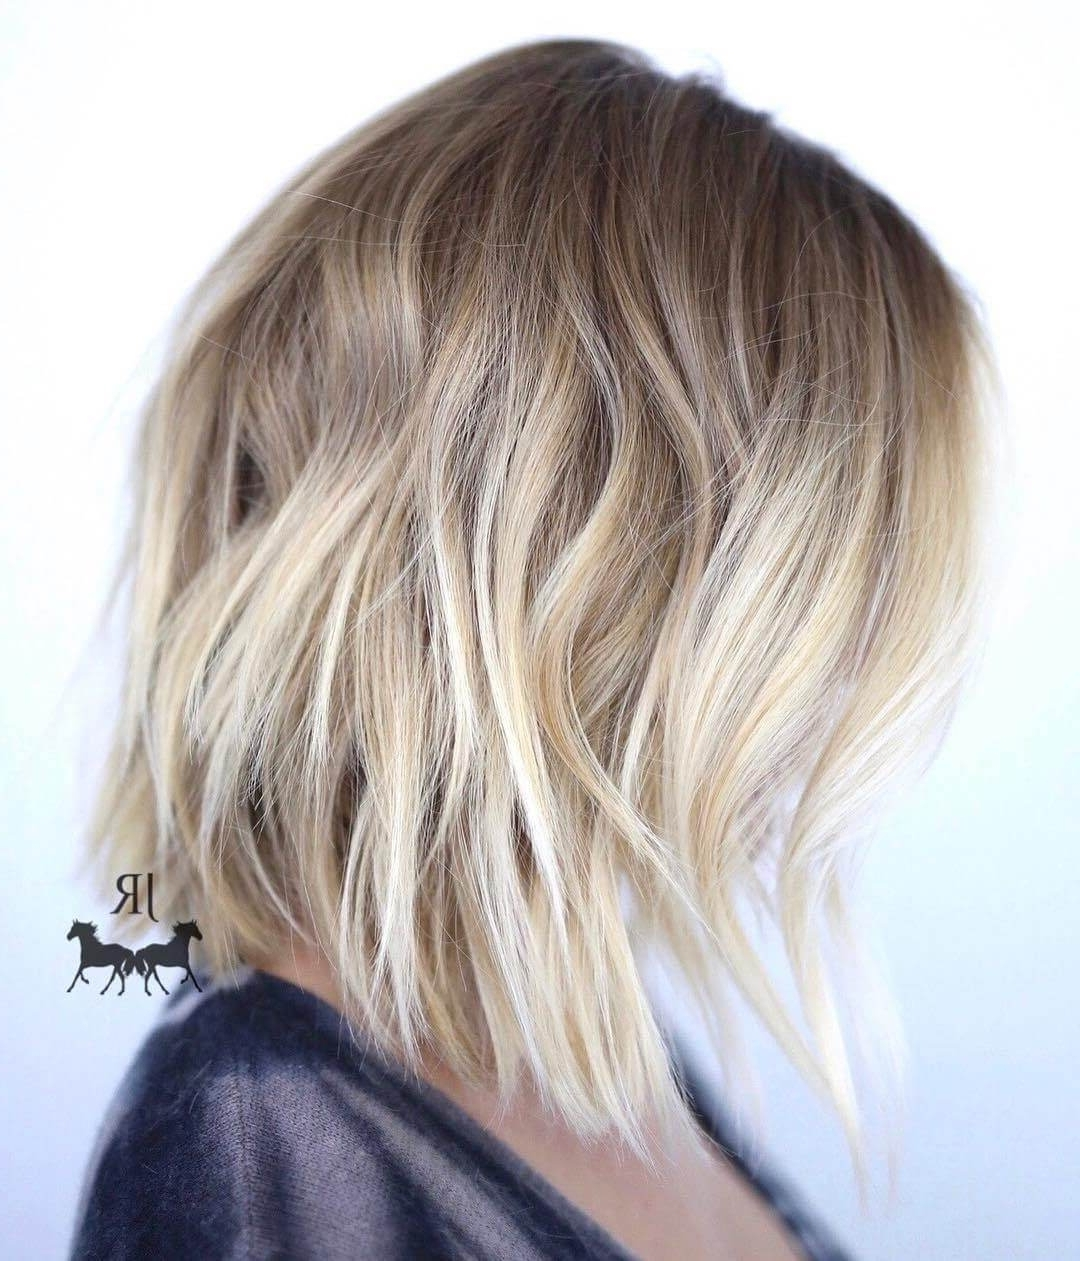 50 Fresh Short Blonde Hair Ideas To Update Your Style In 2018 Intended For Latest White Blonde Hairstyles For Brown Base (View 8 of 20)